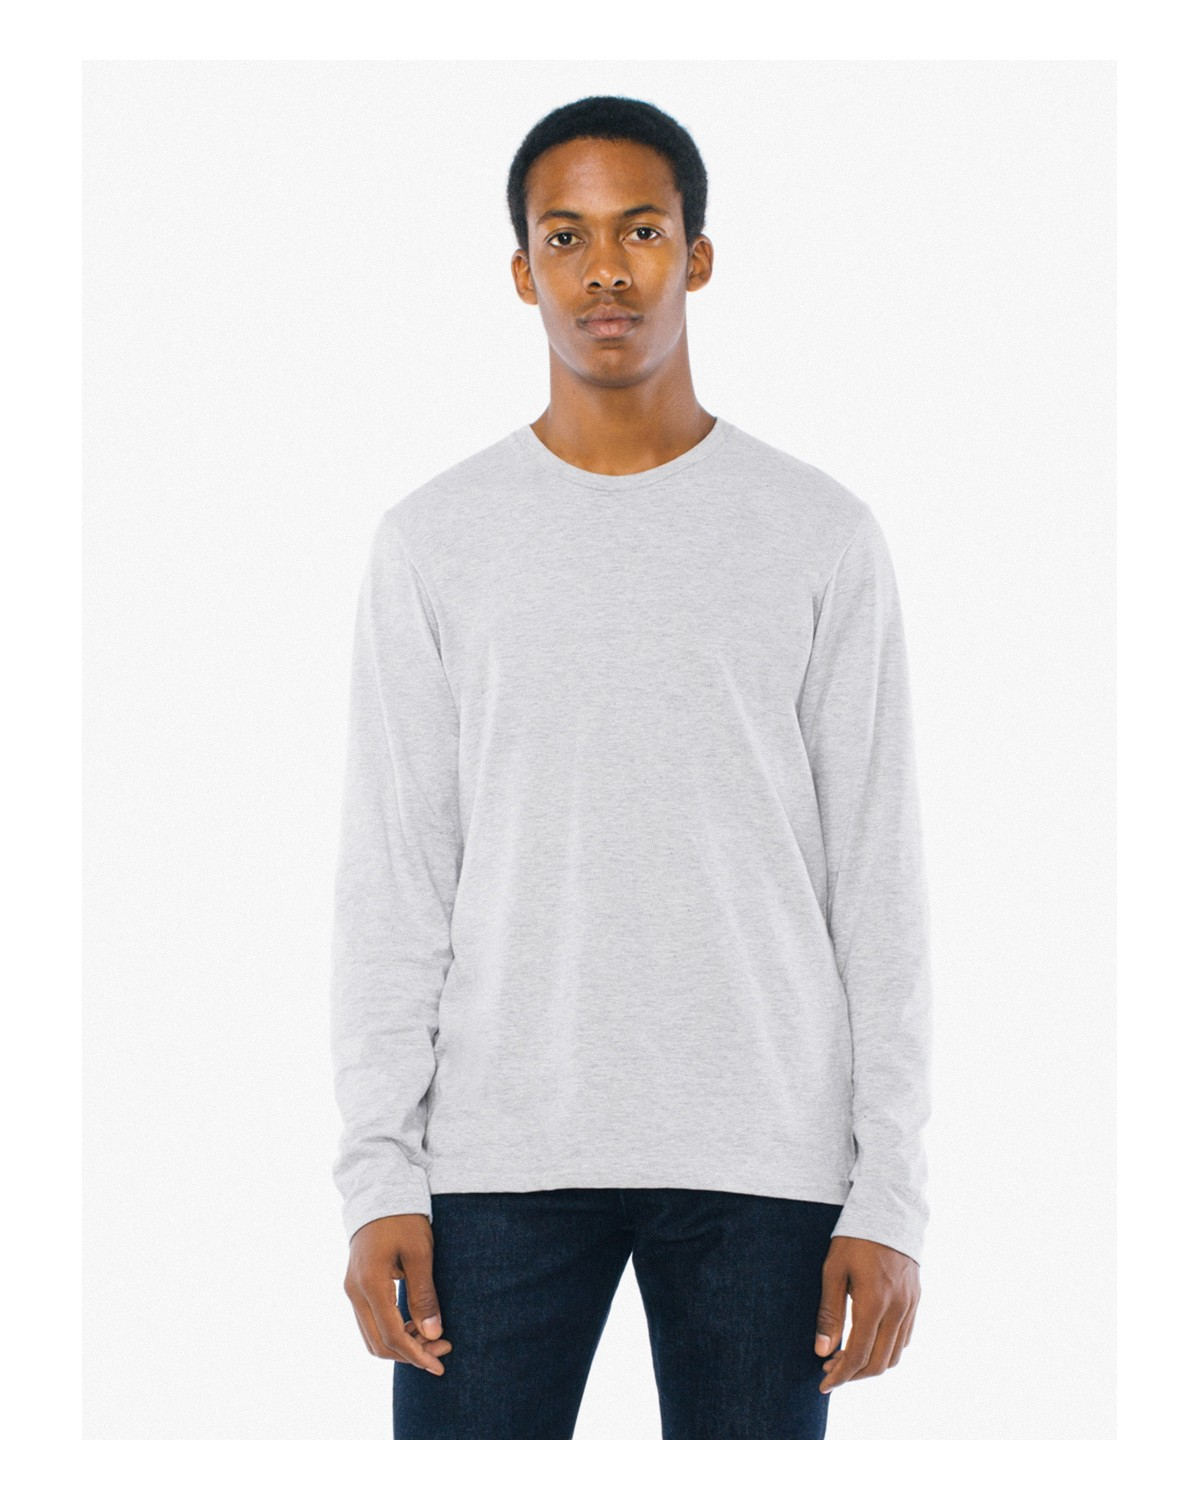 SA2426W American Apparel HEATHER GREY